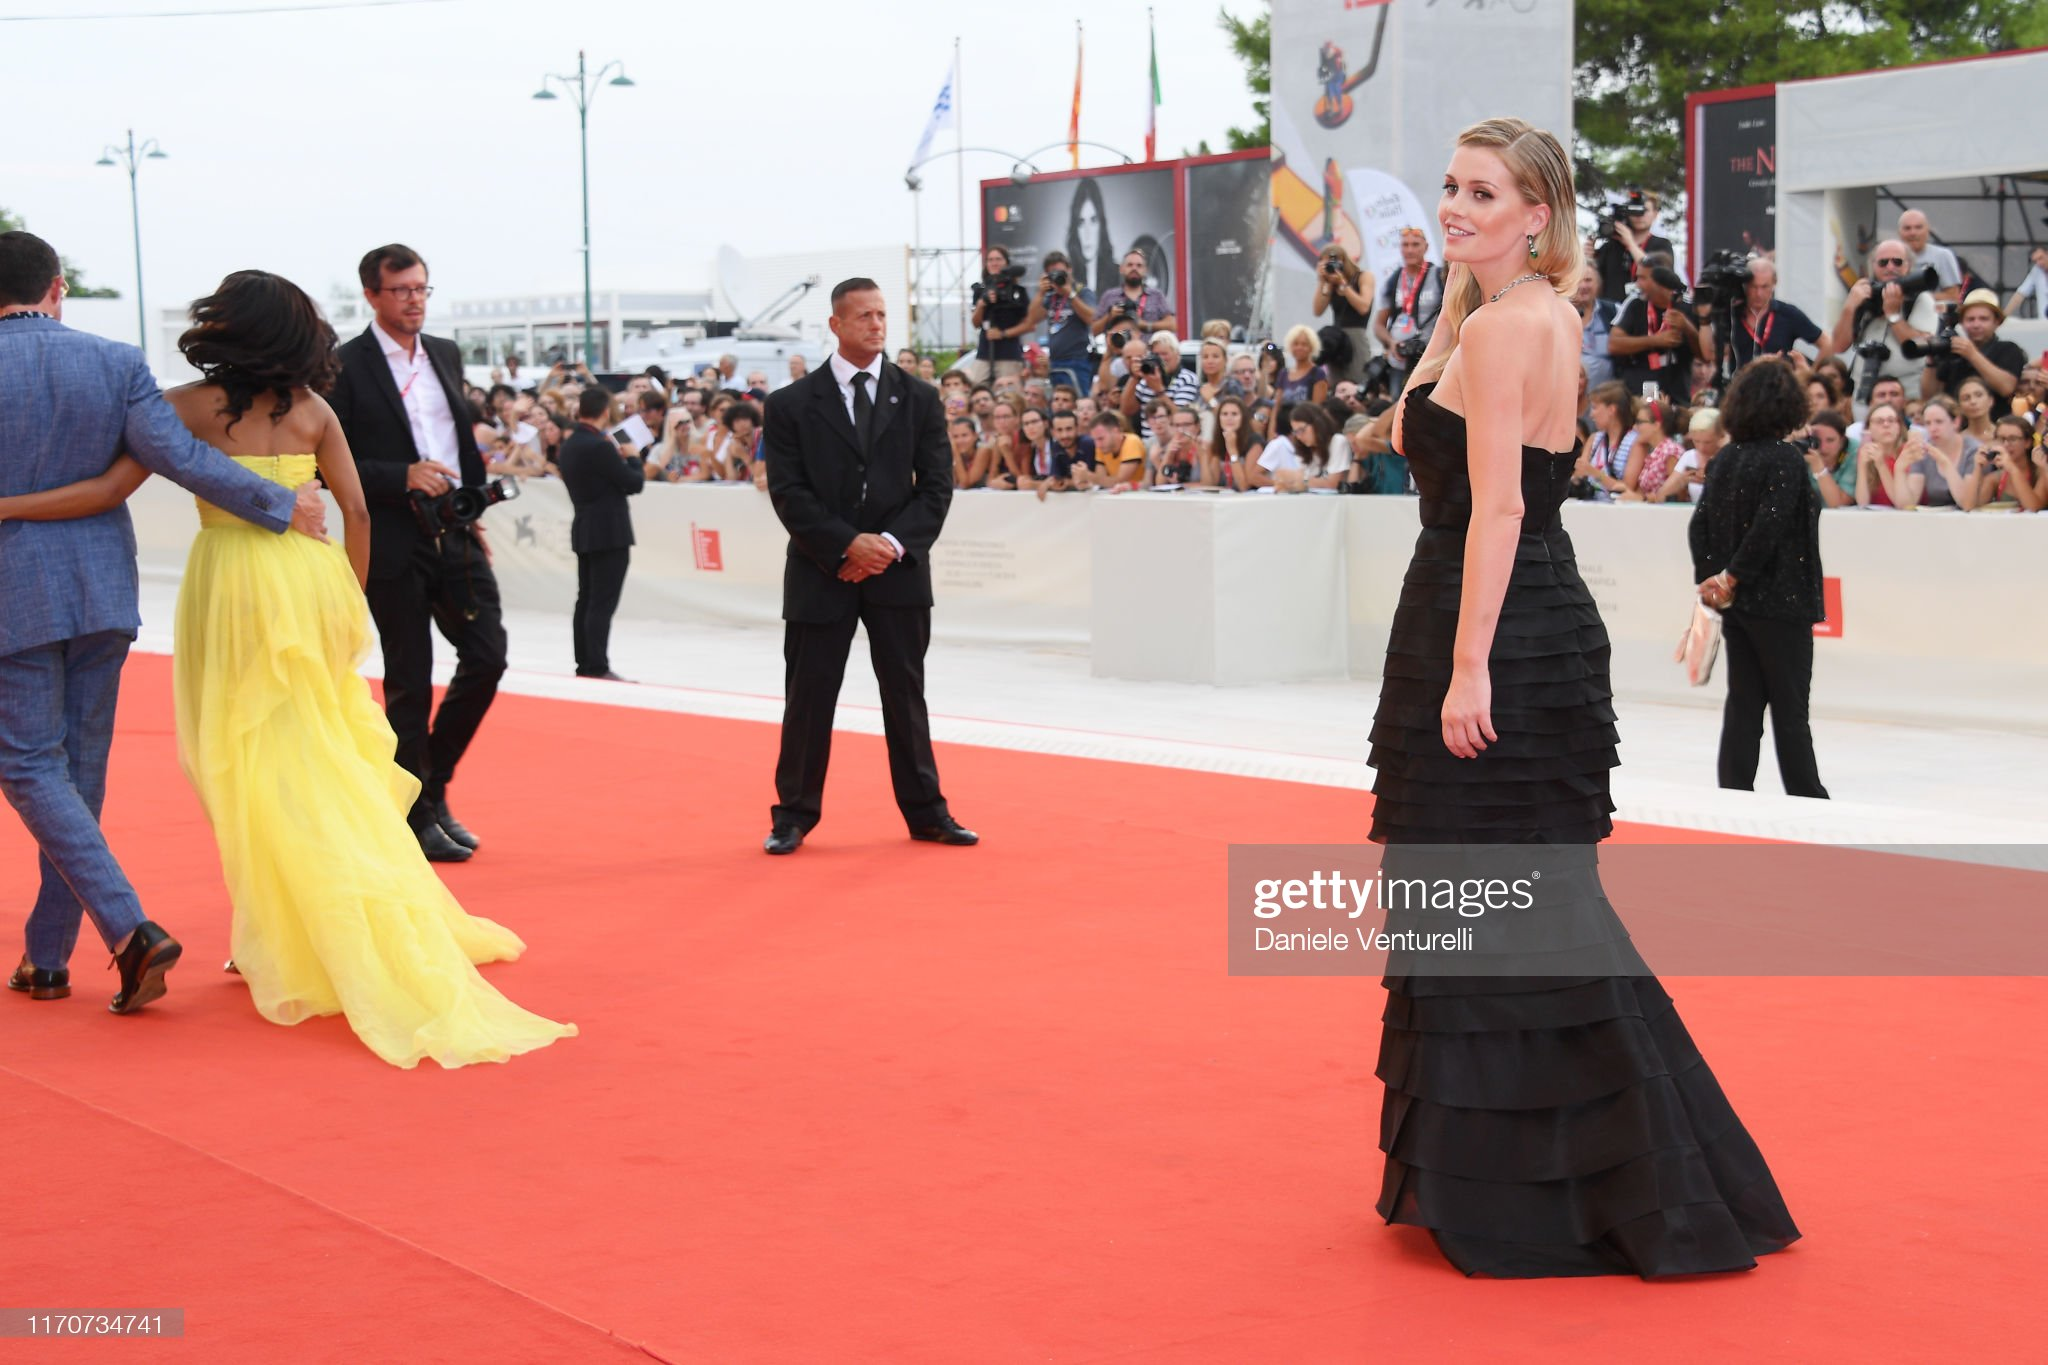 https://media.gettyimages.com/photos/lady-kitty-spencer-walks-the-red-carpet-ahead-of-the-opening-ceremony-picture-id1170734741?s=2048x2048